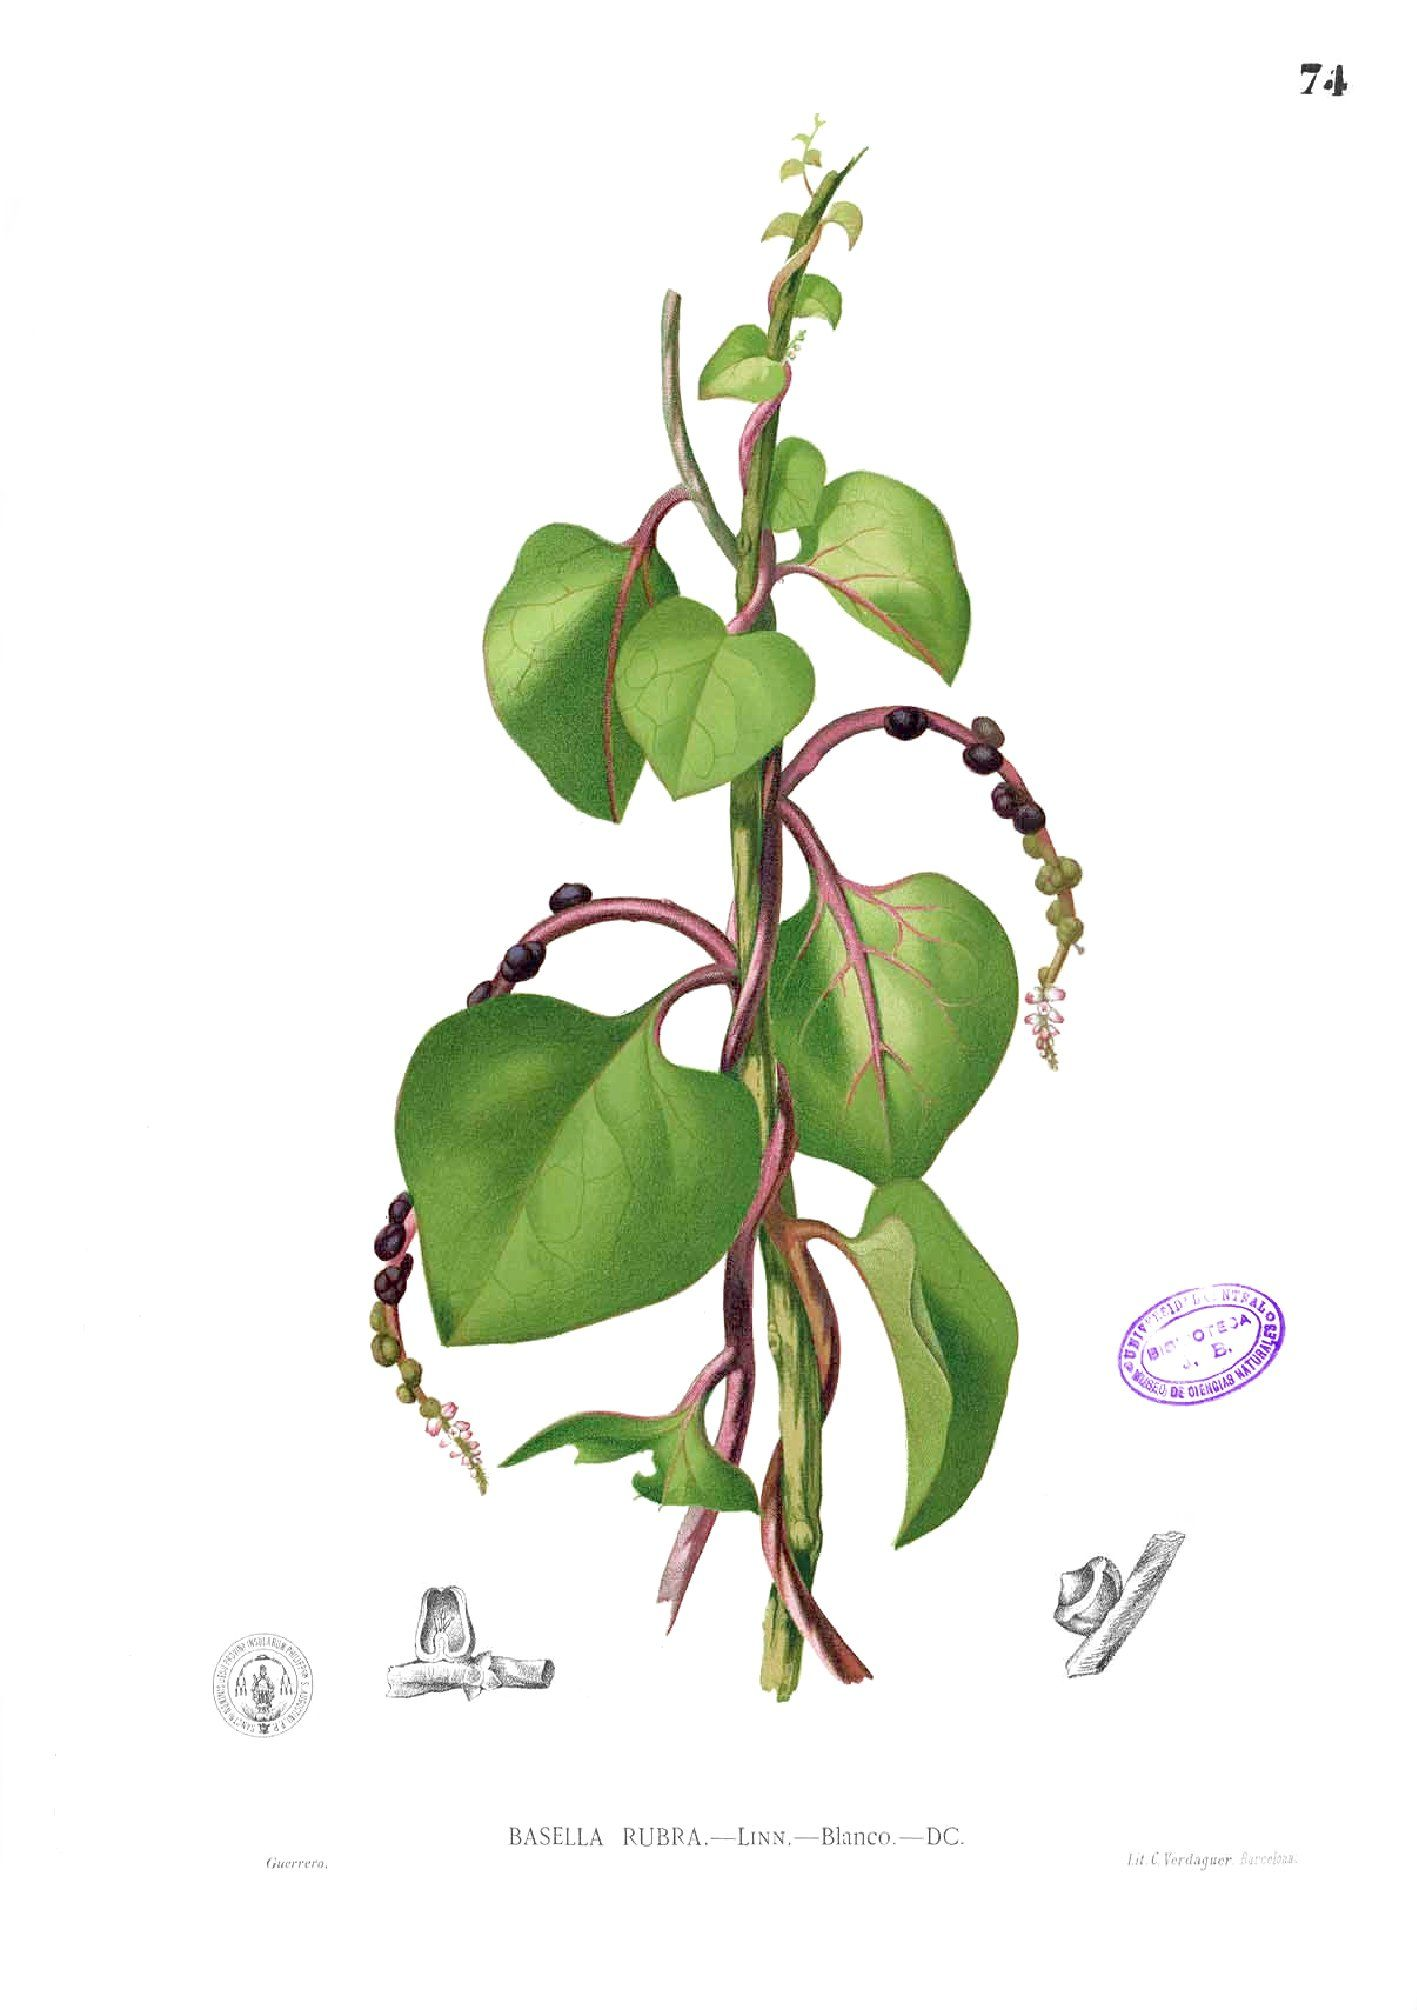 Plant illustration of Malabar spinach